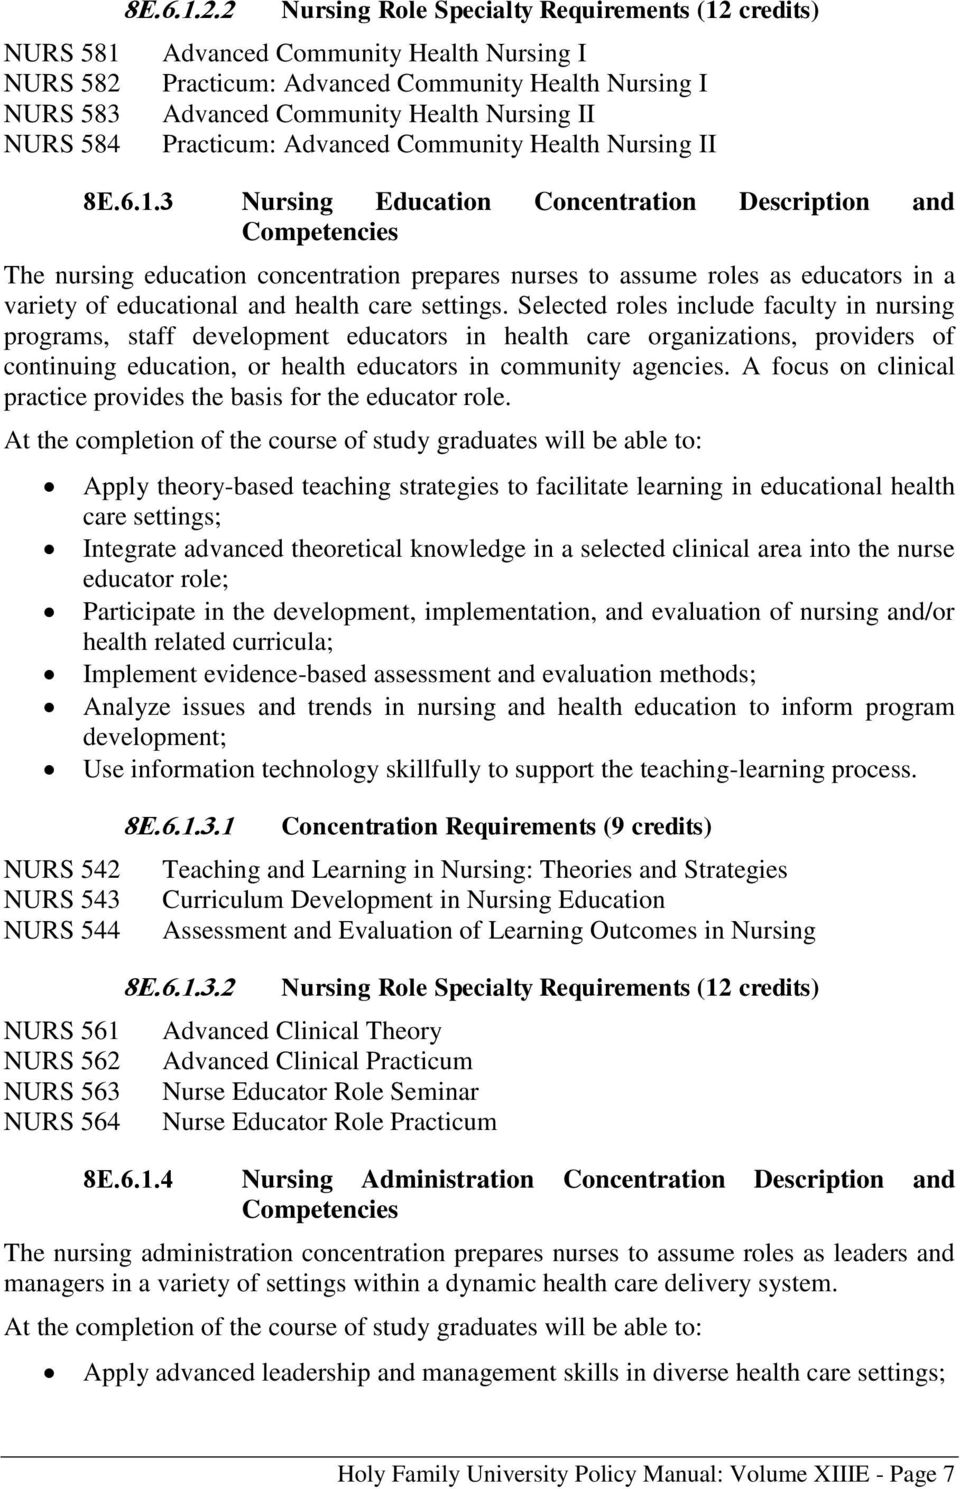 2 Nursing Role Specialty Requirements (12 credits) Advanced Community Health Nursing I Practicum: Advanced Community Health Nursing I Advanced Community Health Nursing II Practicum: Advanced